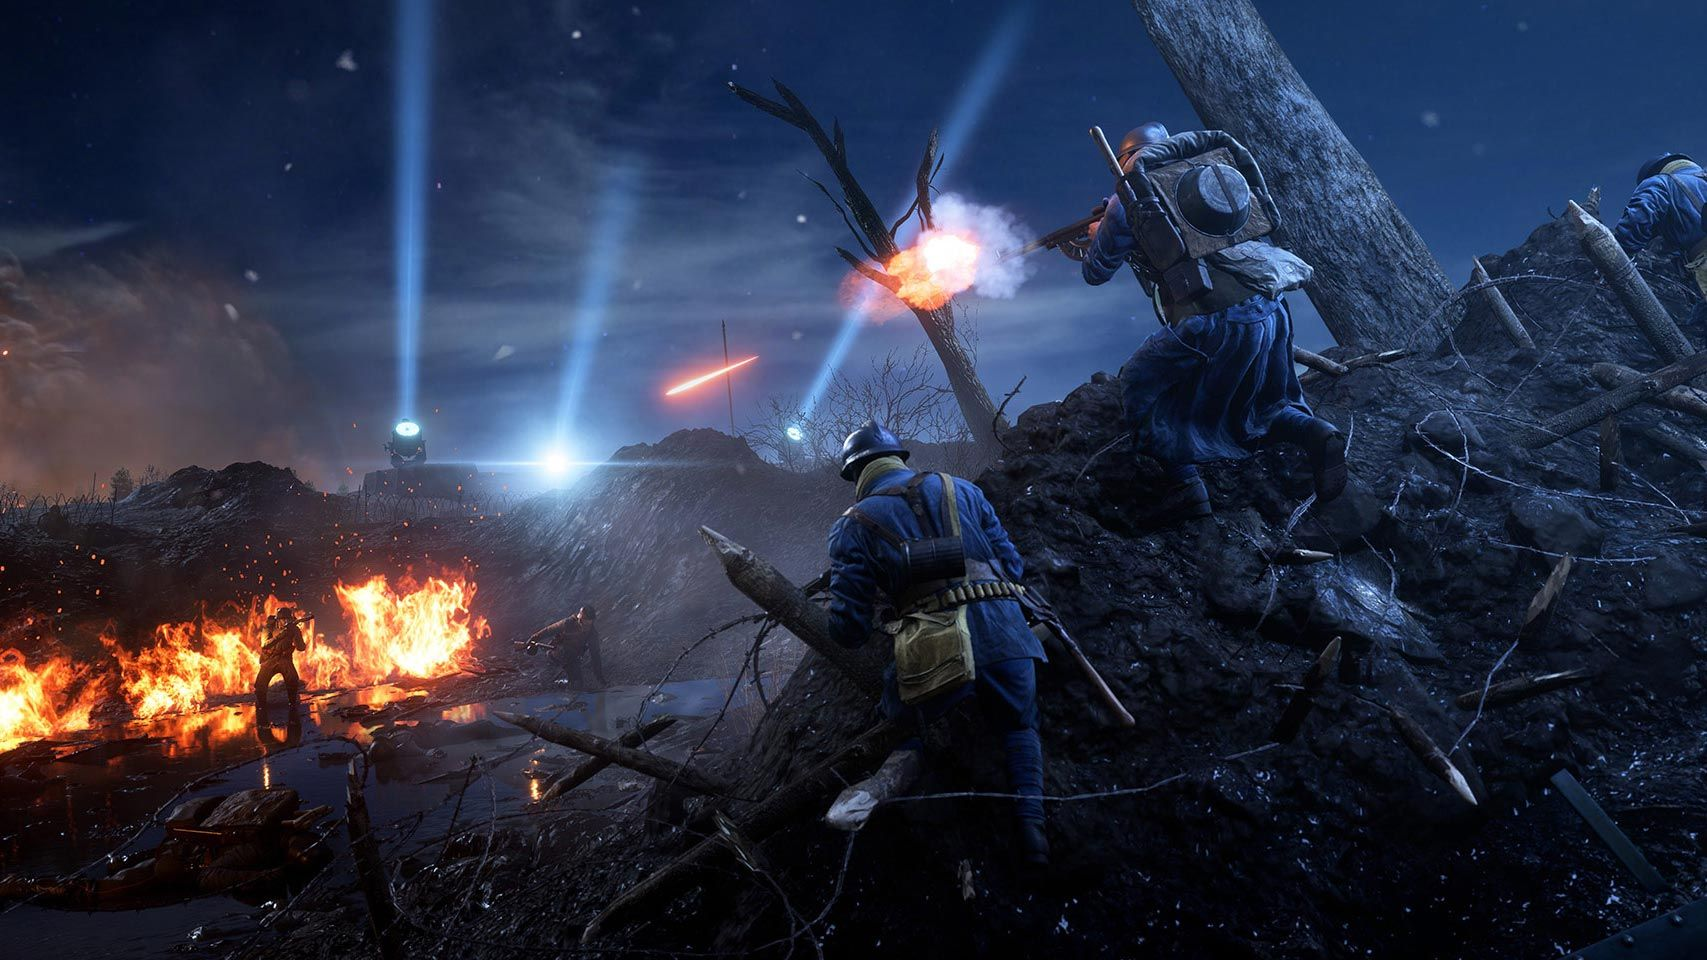 Battlefield 1's first night map arrives with the Nivelle Nights update on Xbox One